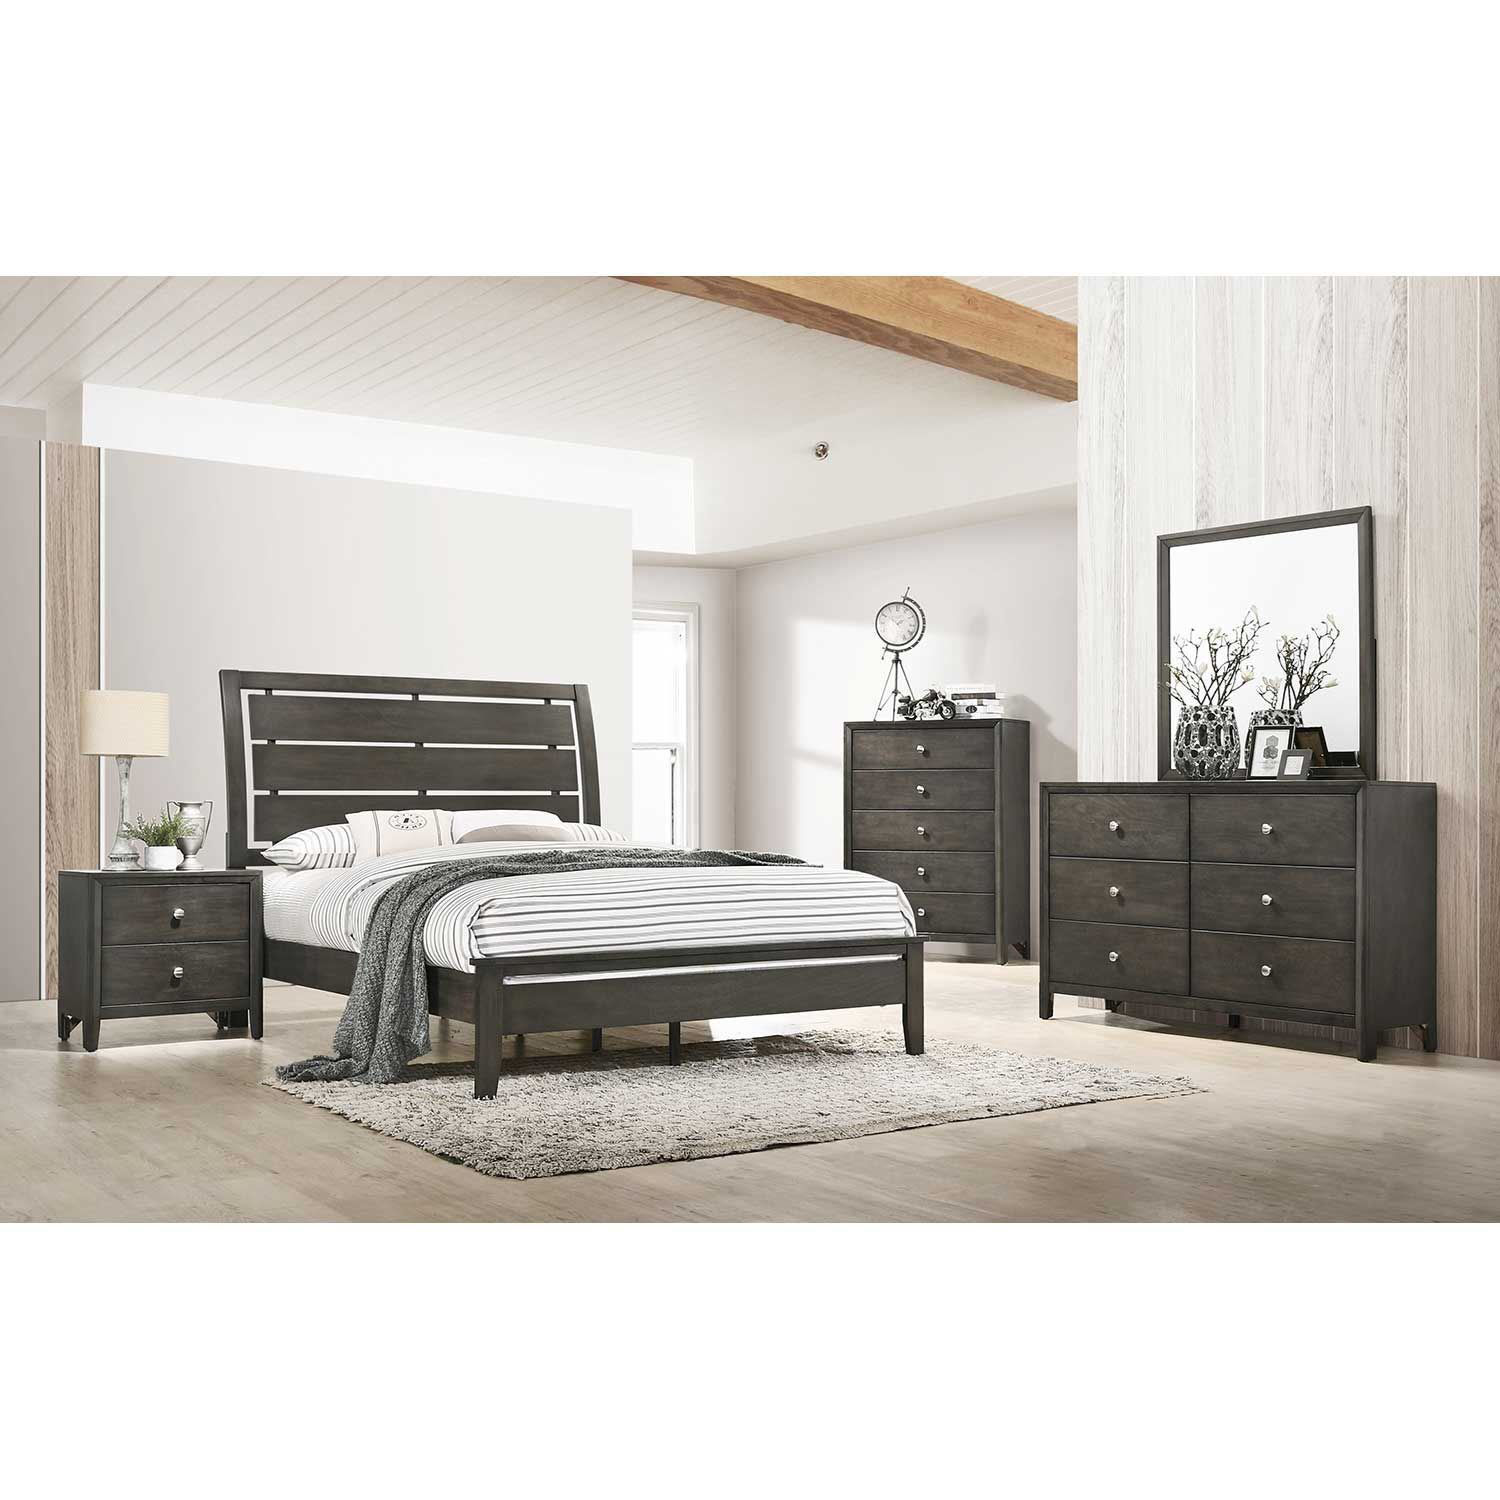 Picture of Grant 5 Piece Bedroom Set